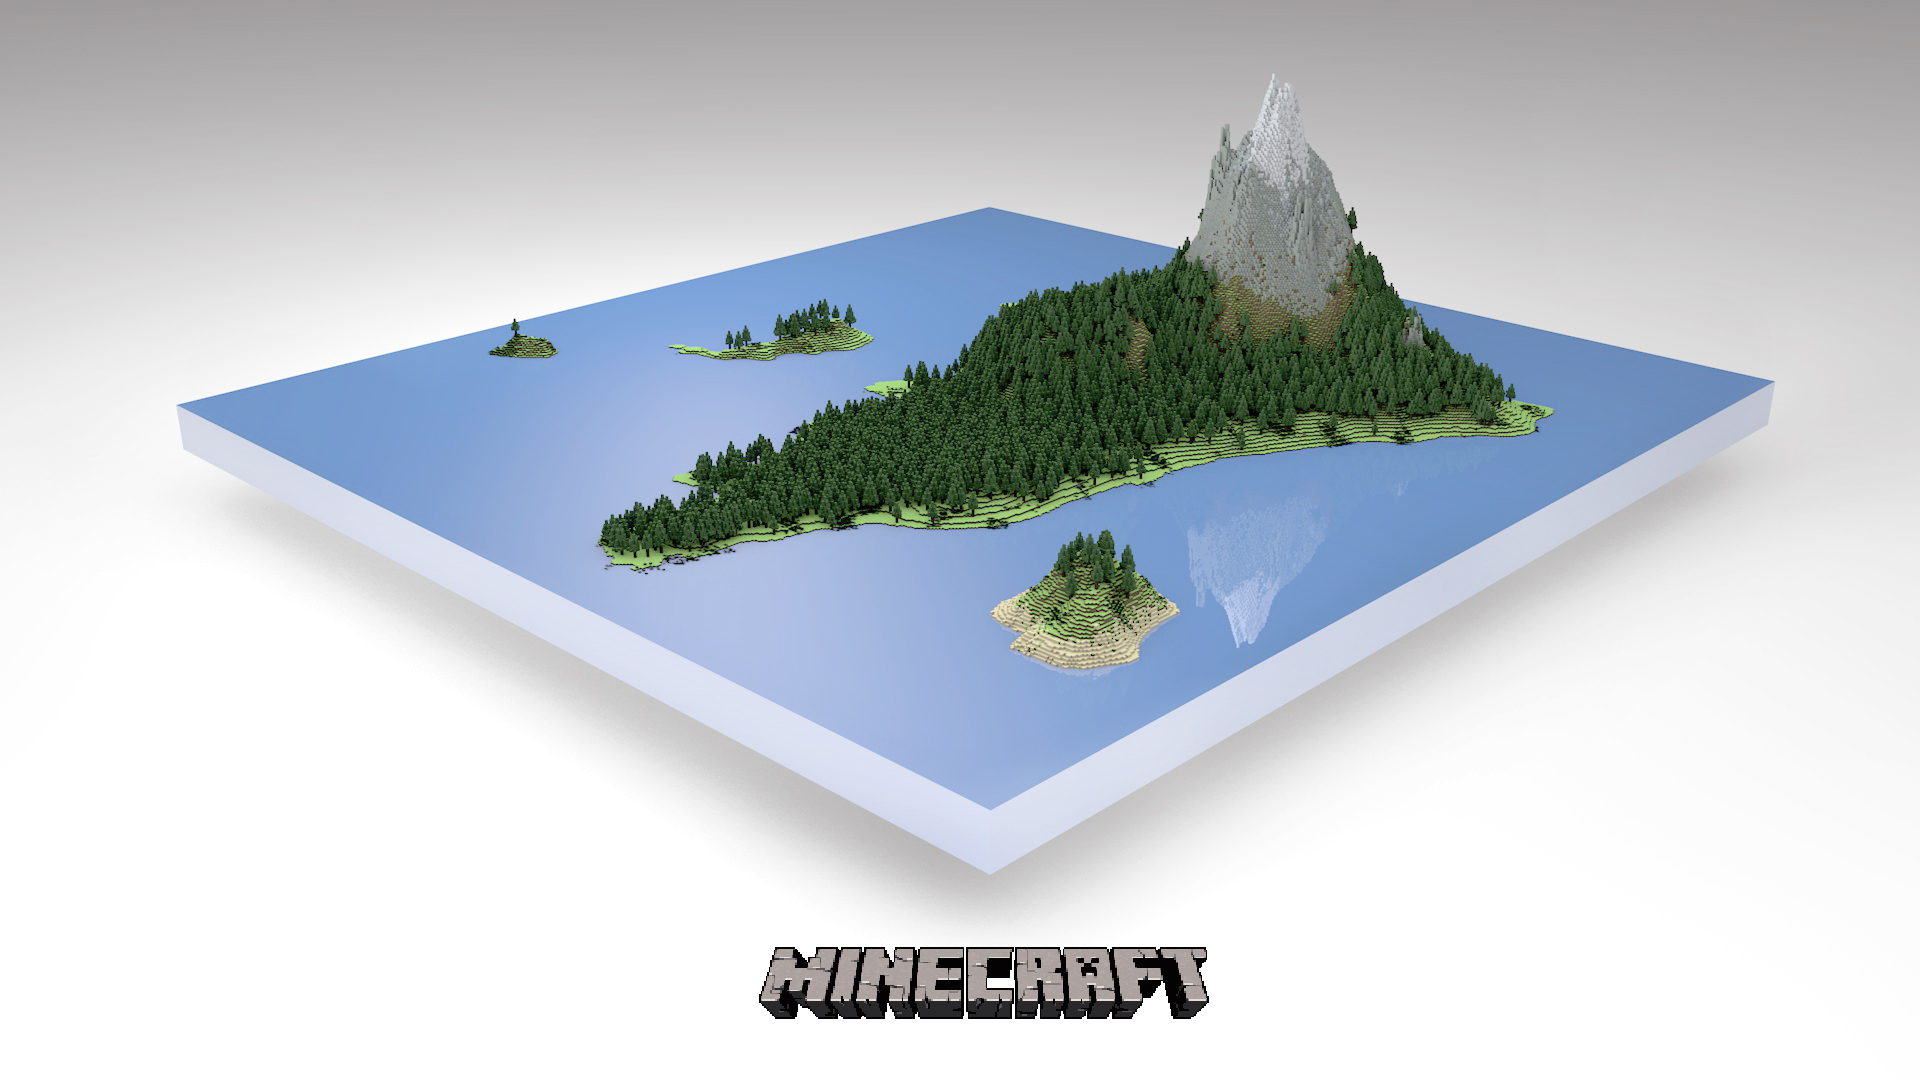 Minecraft Island 3D Wallpaper Image